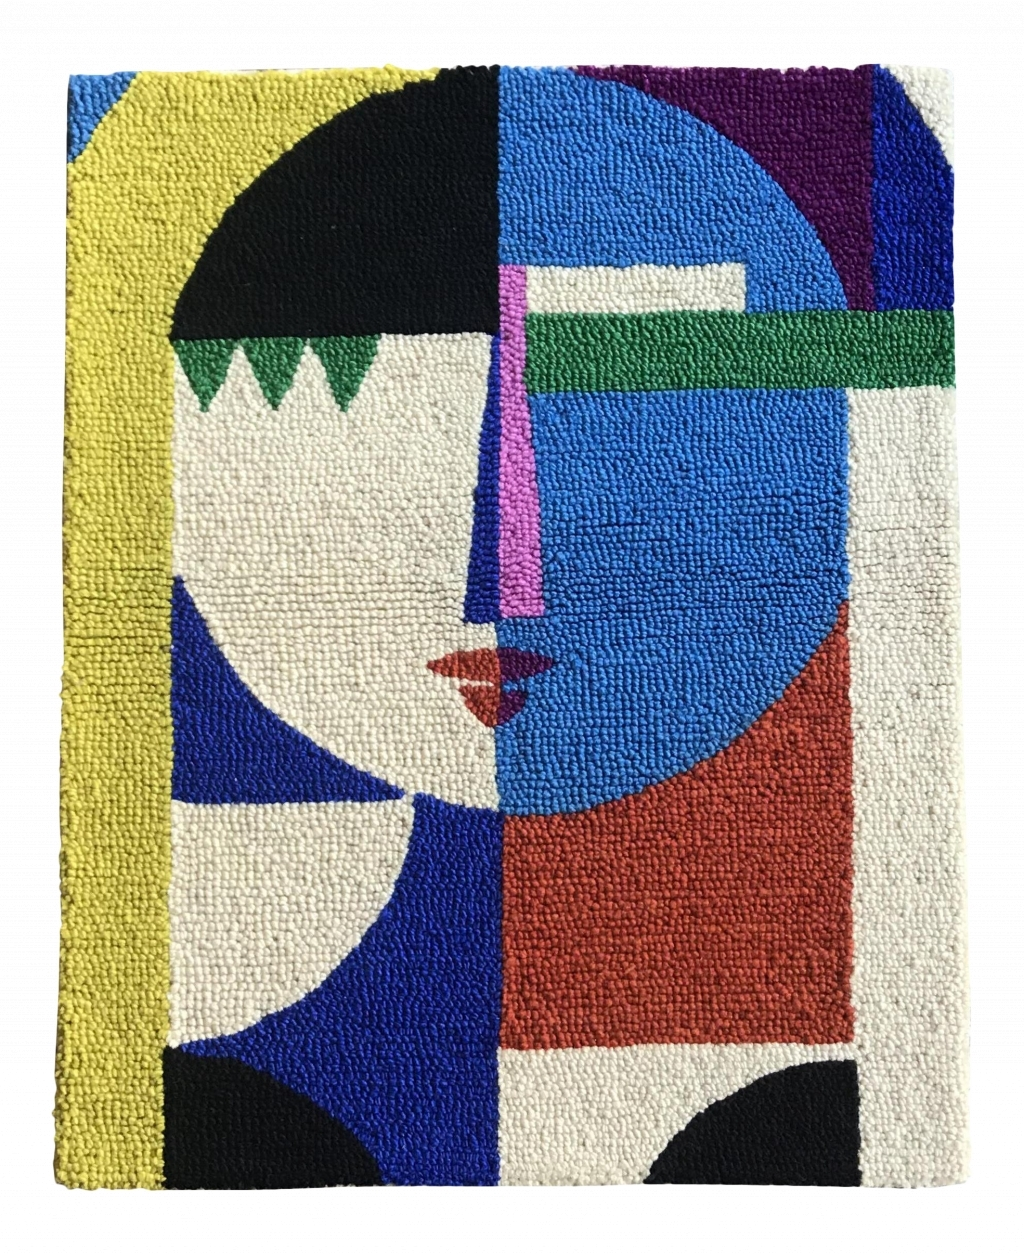 Fashionable Textile Wall Art In Conjunction With Vintage Used For Most Popular Abstract Textile Wall Art (View 6 of 15)